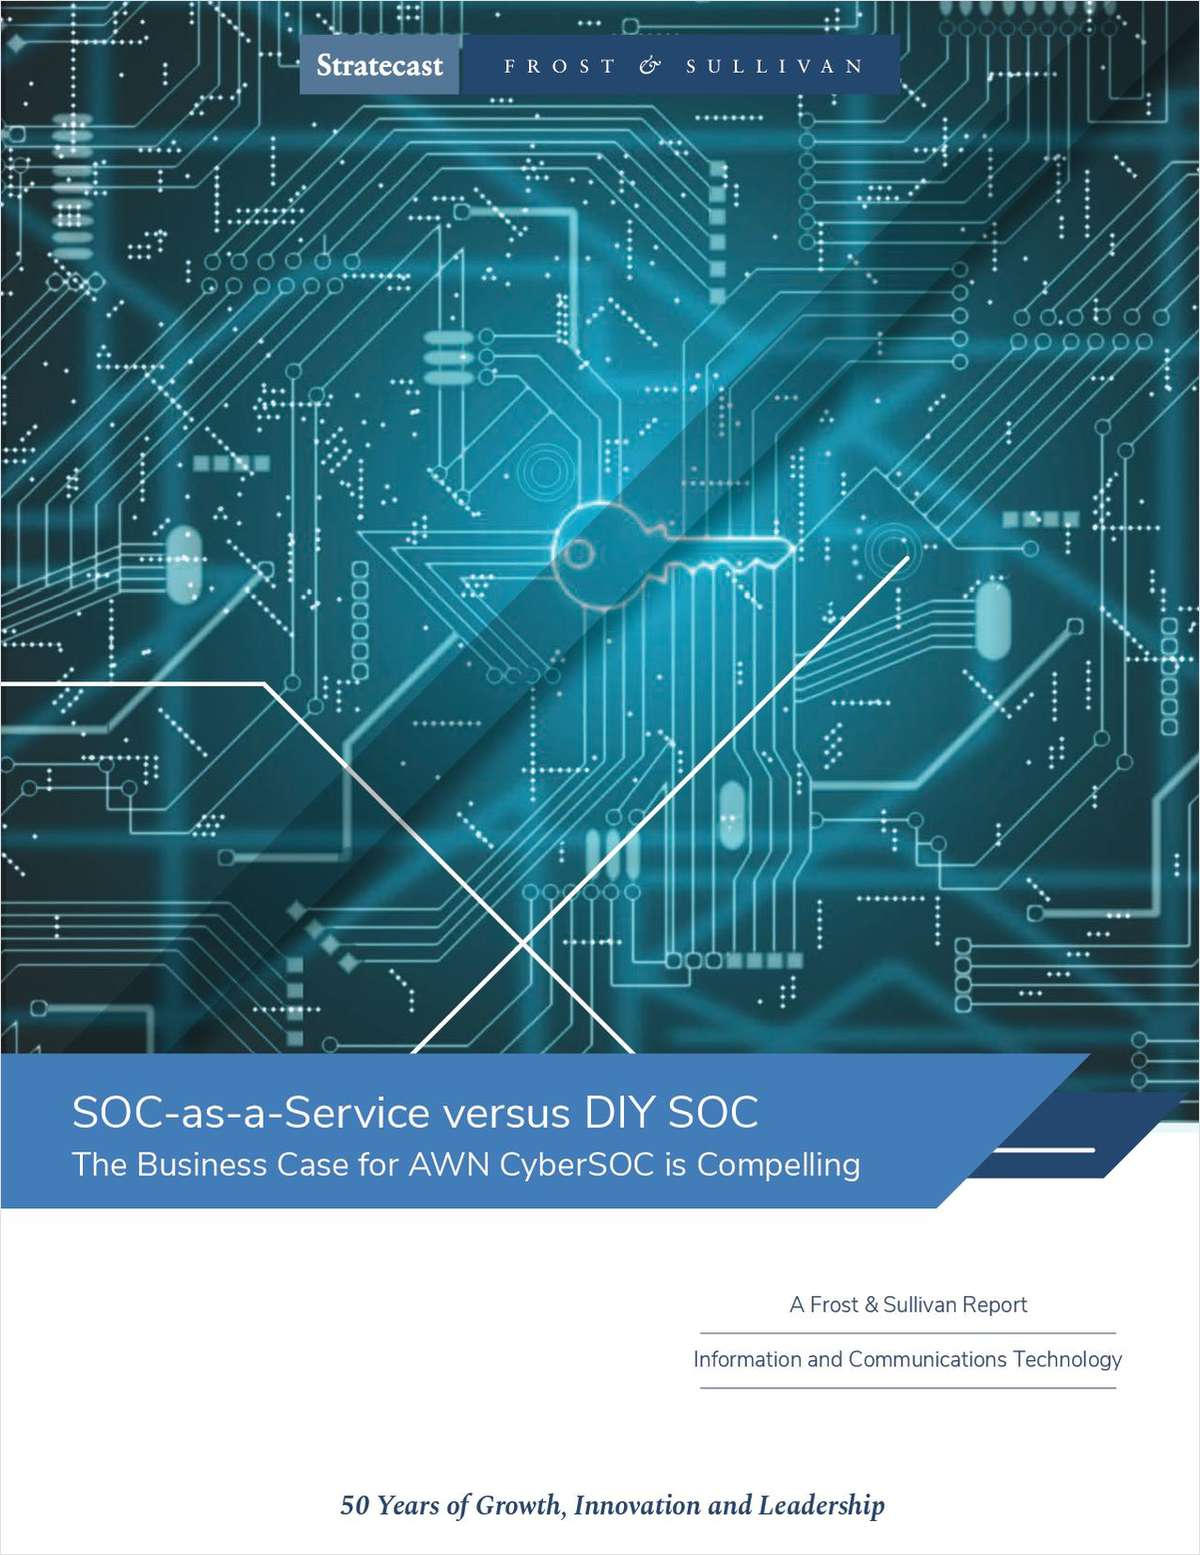 Frost & Sullivan Makes the Case for Arctic Wolf's SOC-as-a-Service over DIY SOC